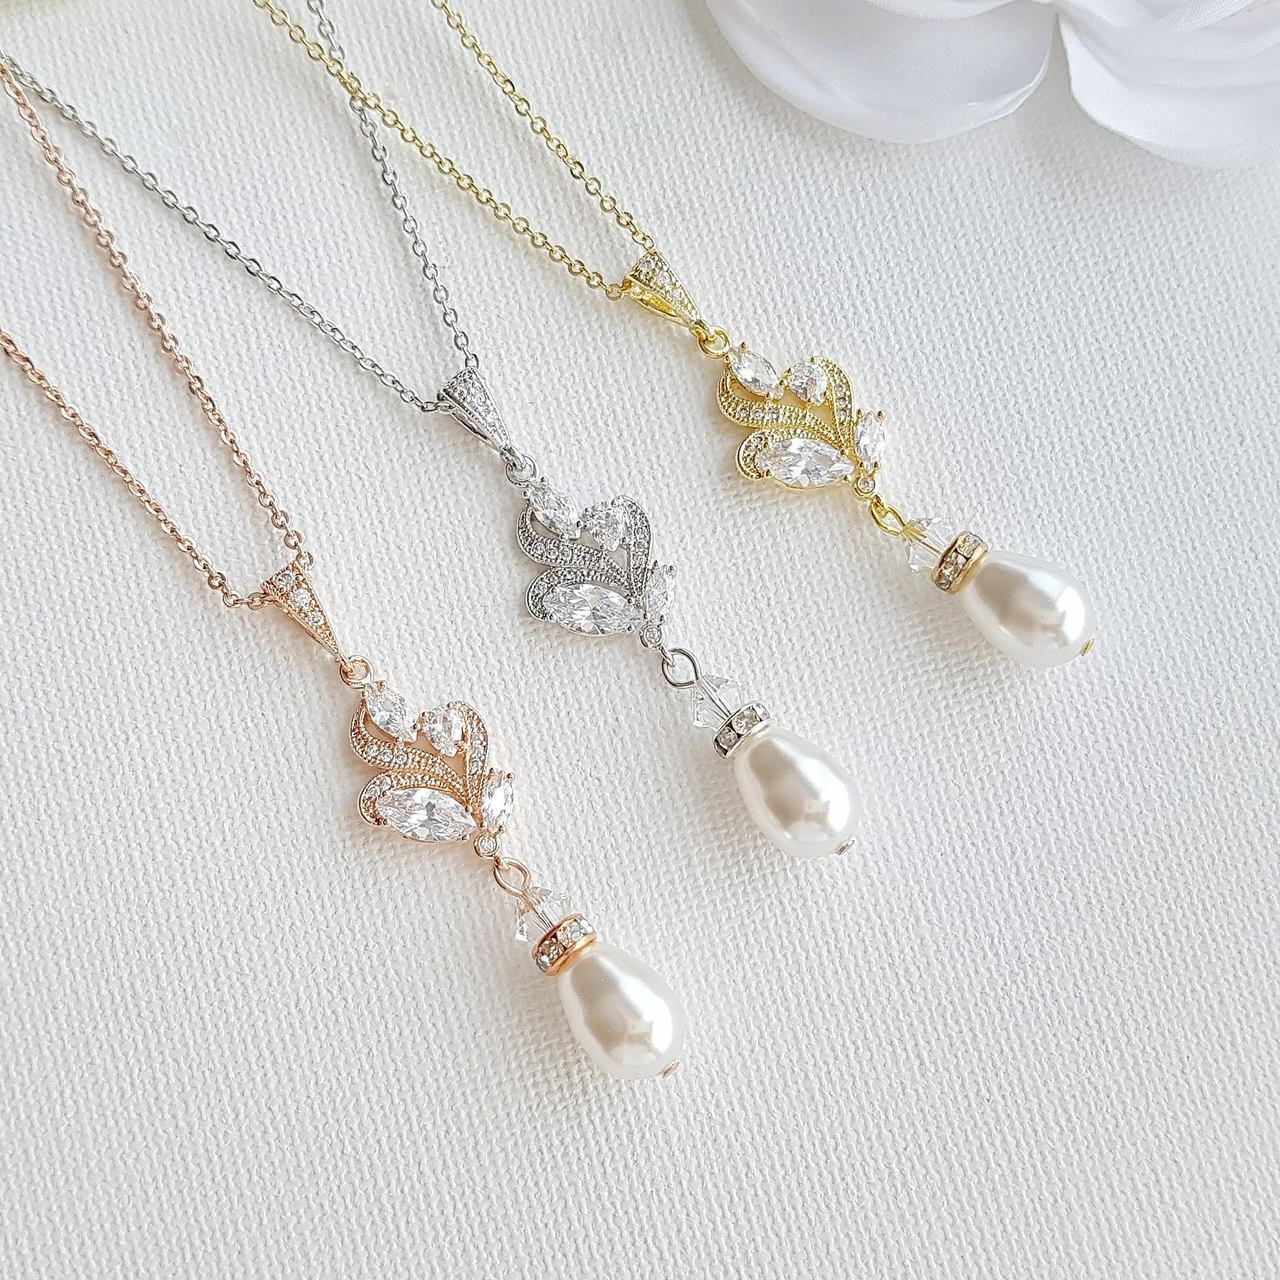 Vintage Style Pearl Drop Pendant Wedding Necklace-Wavy